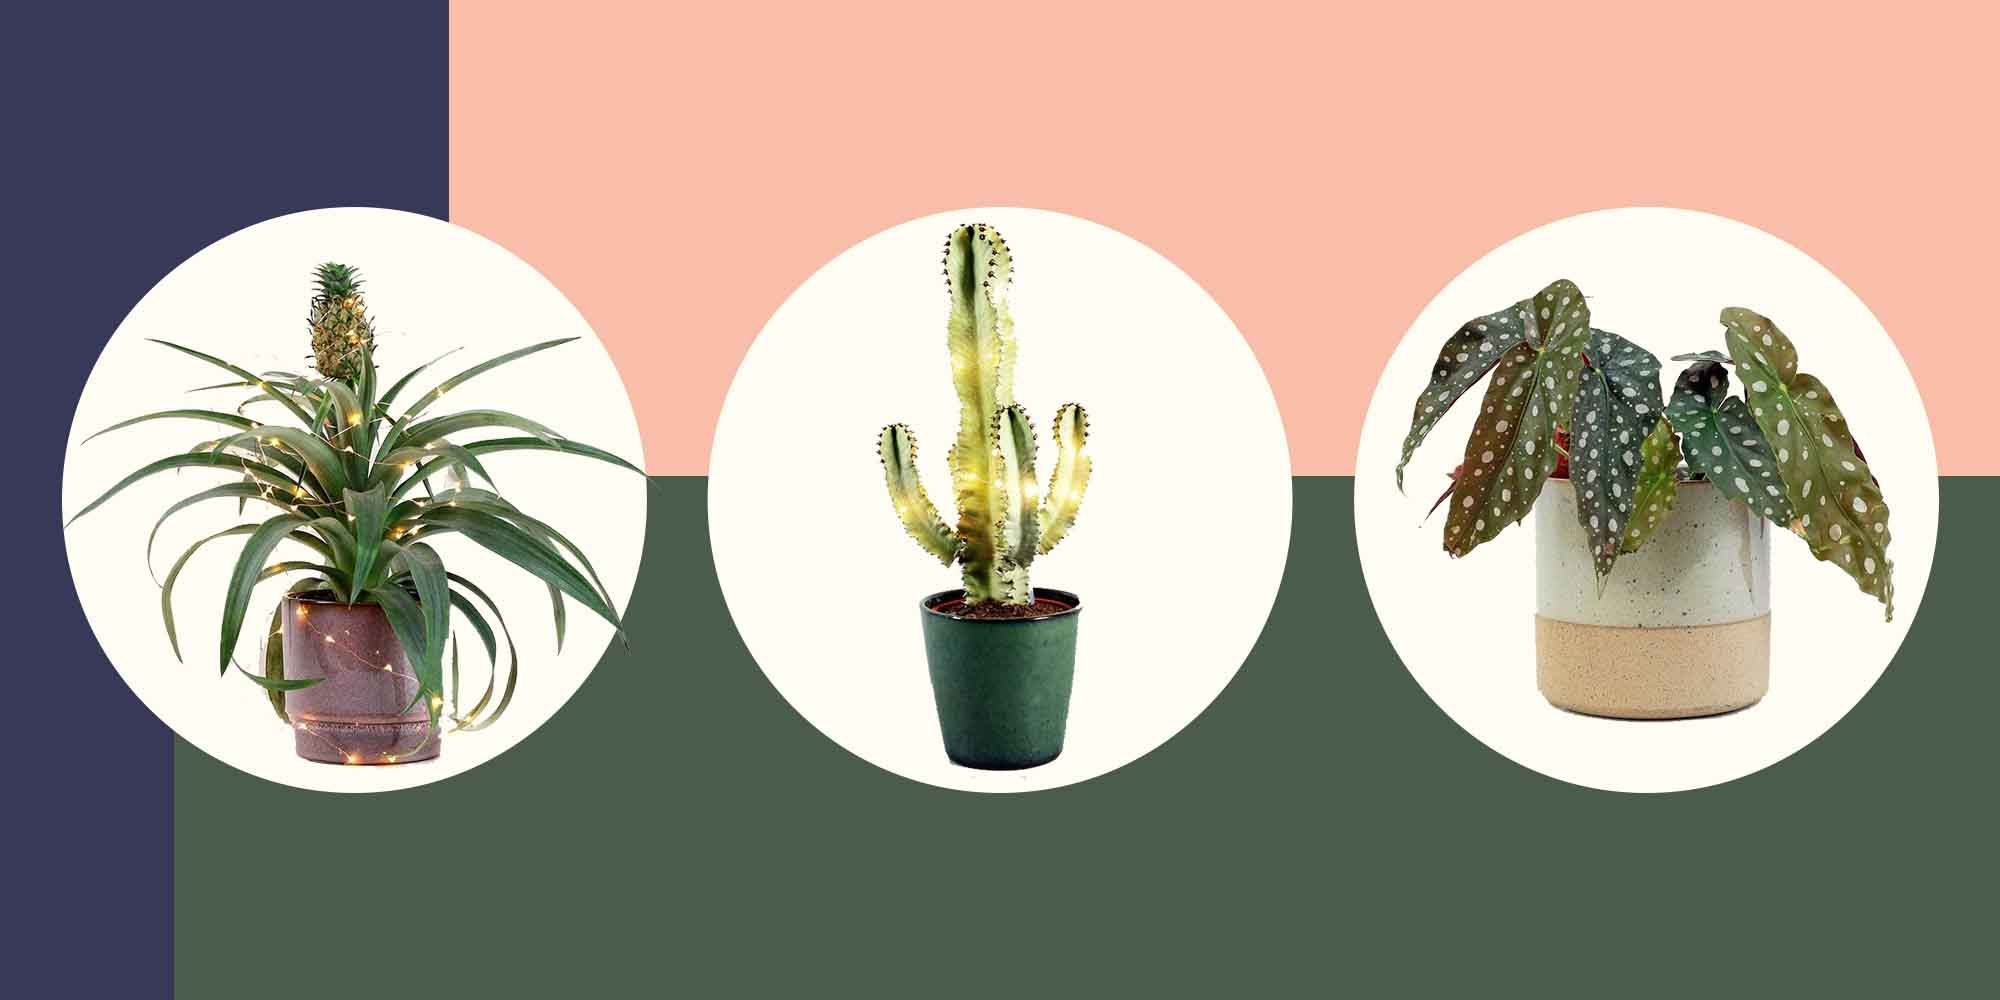 7 beautiful and unique plants to buy from Bloombox Club's new Christmas collection